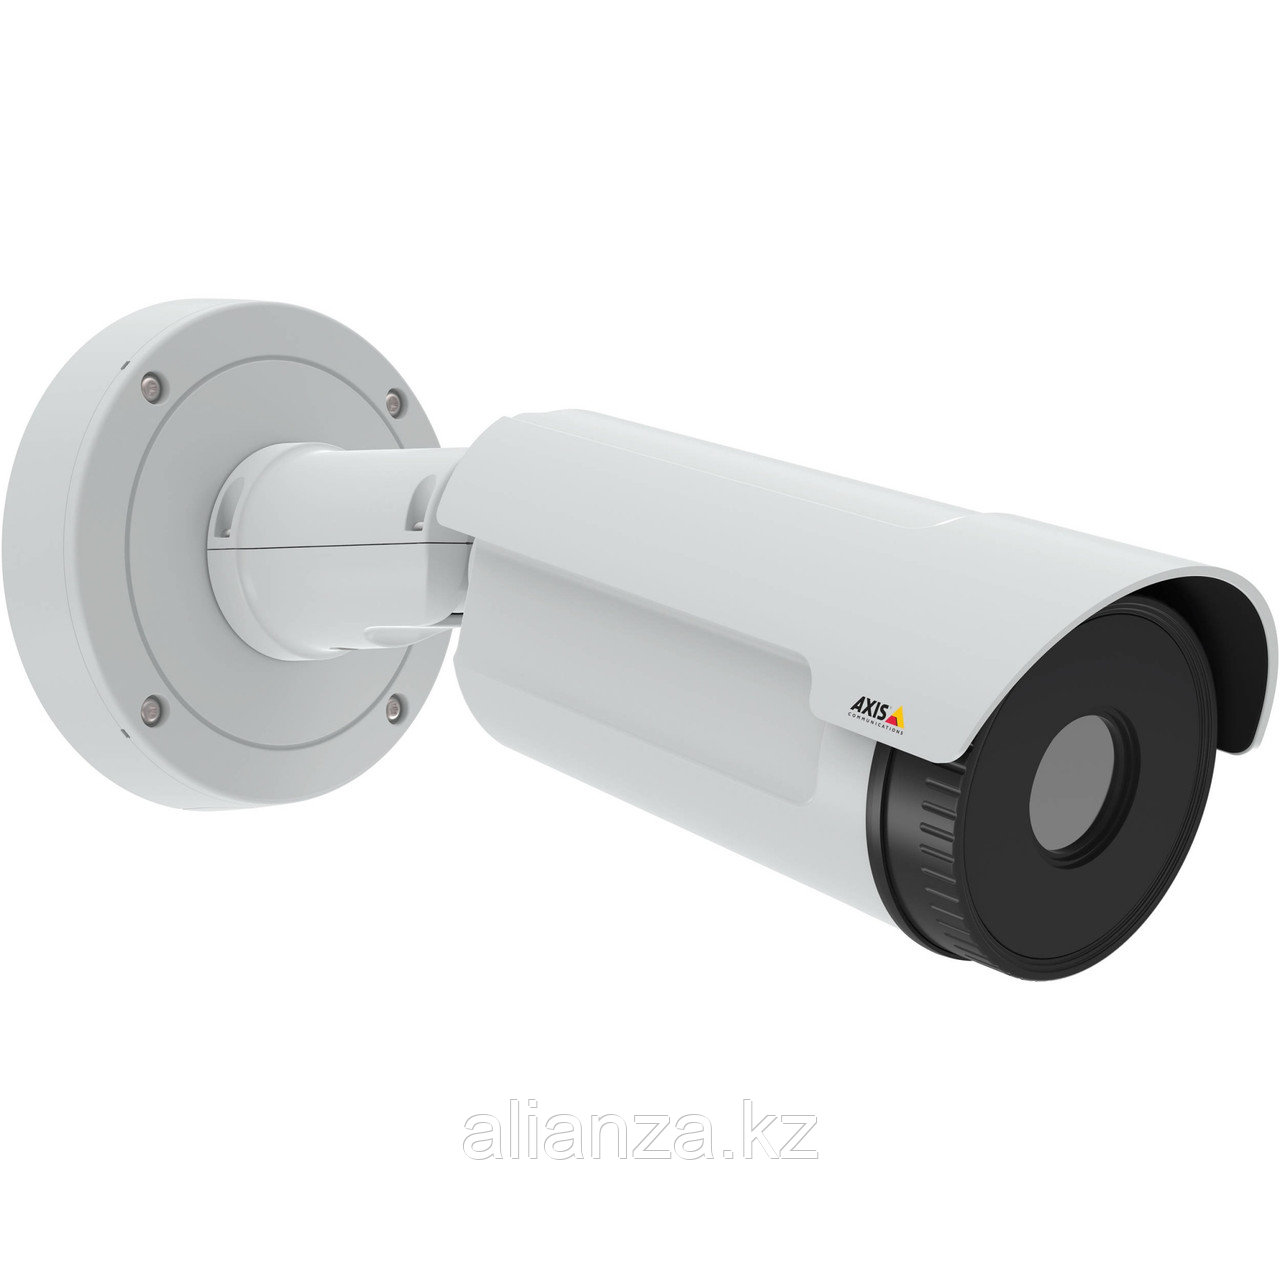 IP камера AXIS Q2901-E 19MM